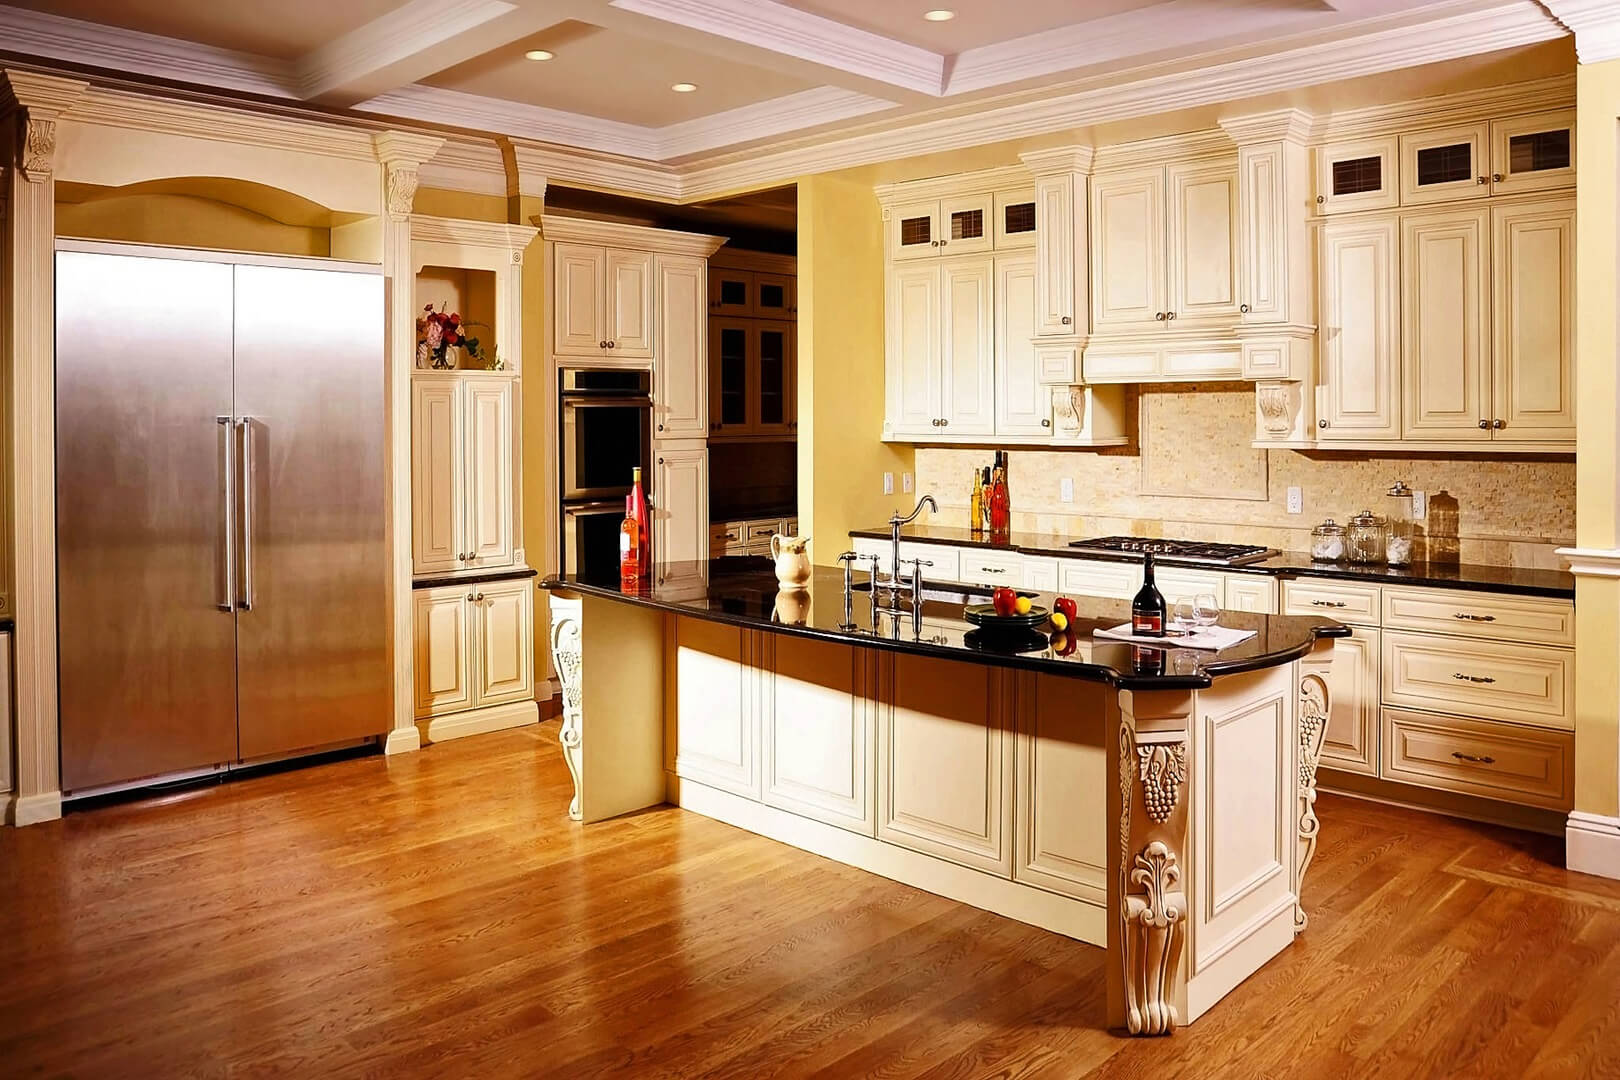 J&K Kitchen Cabinetry